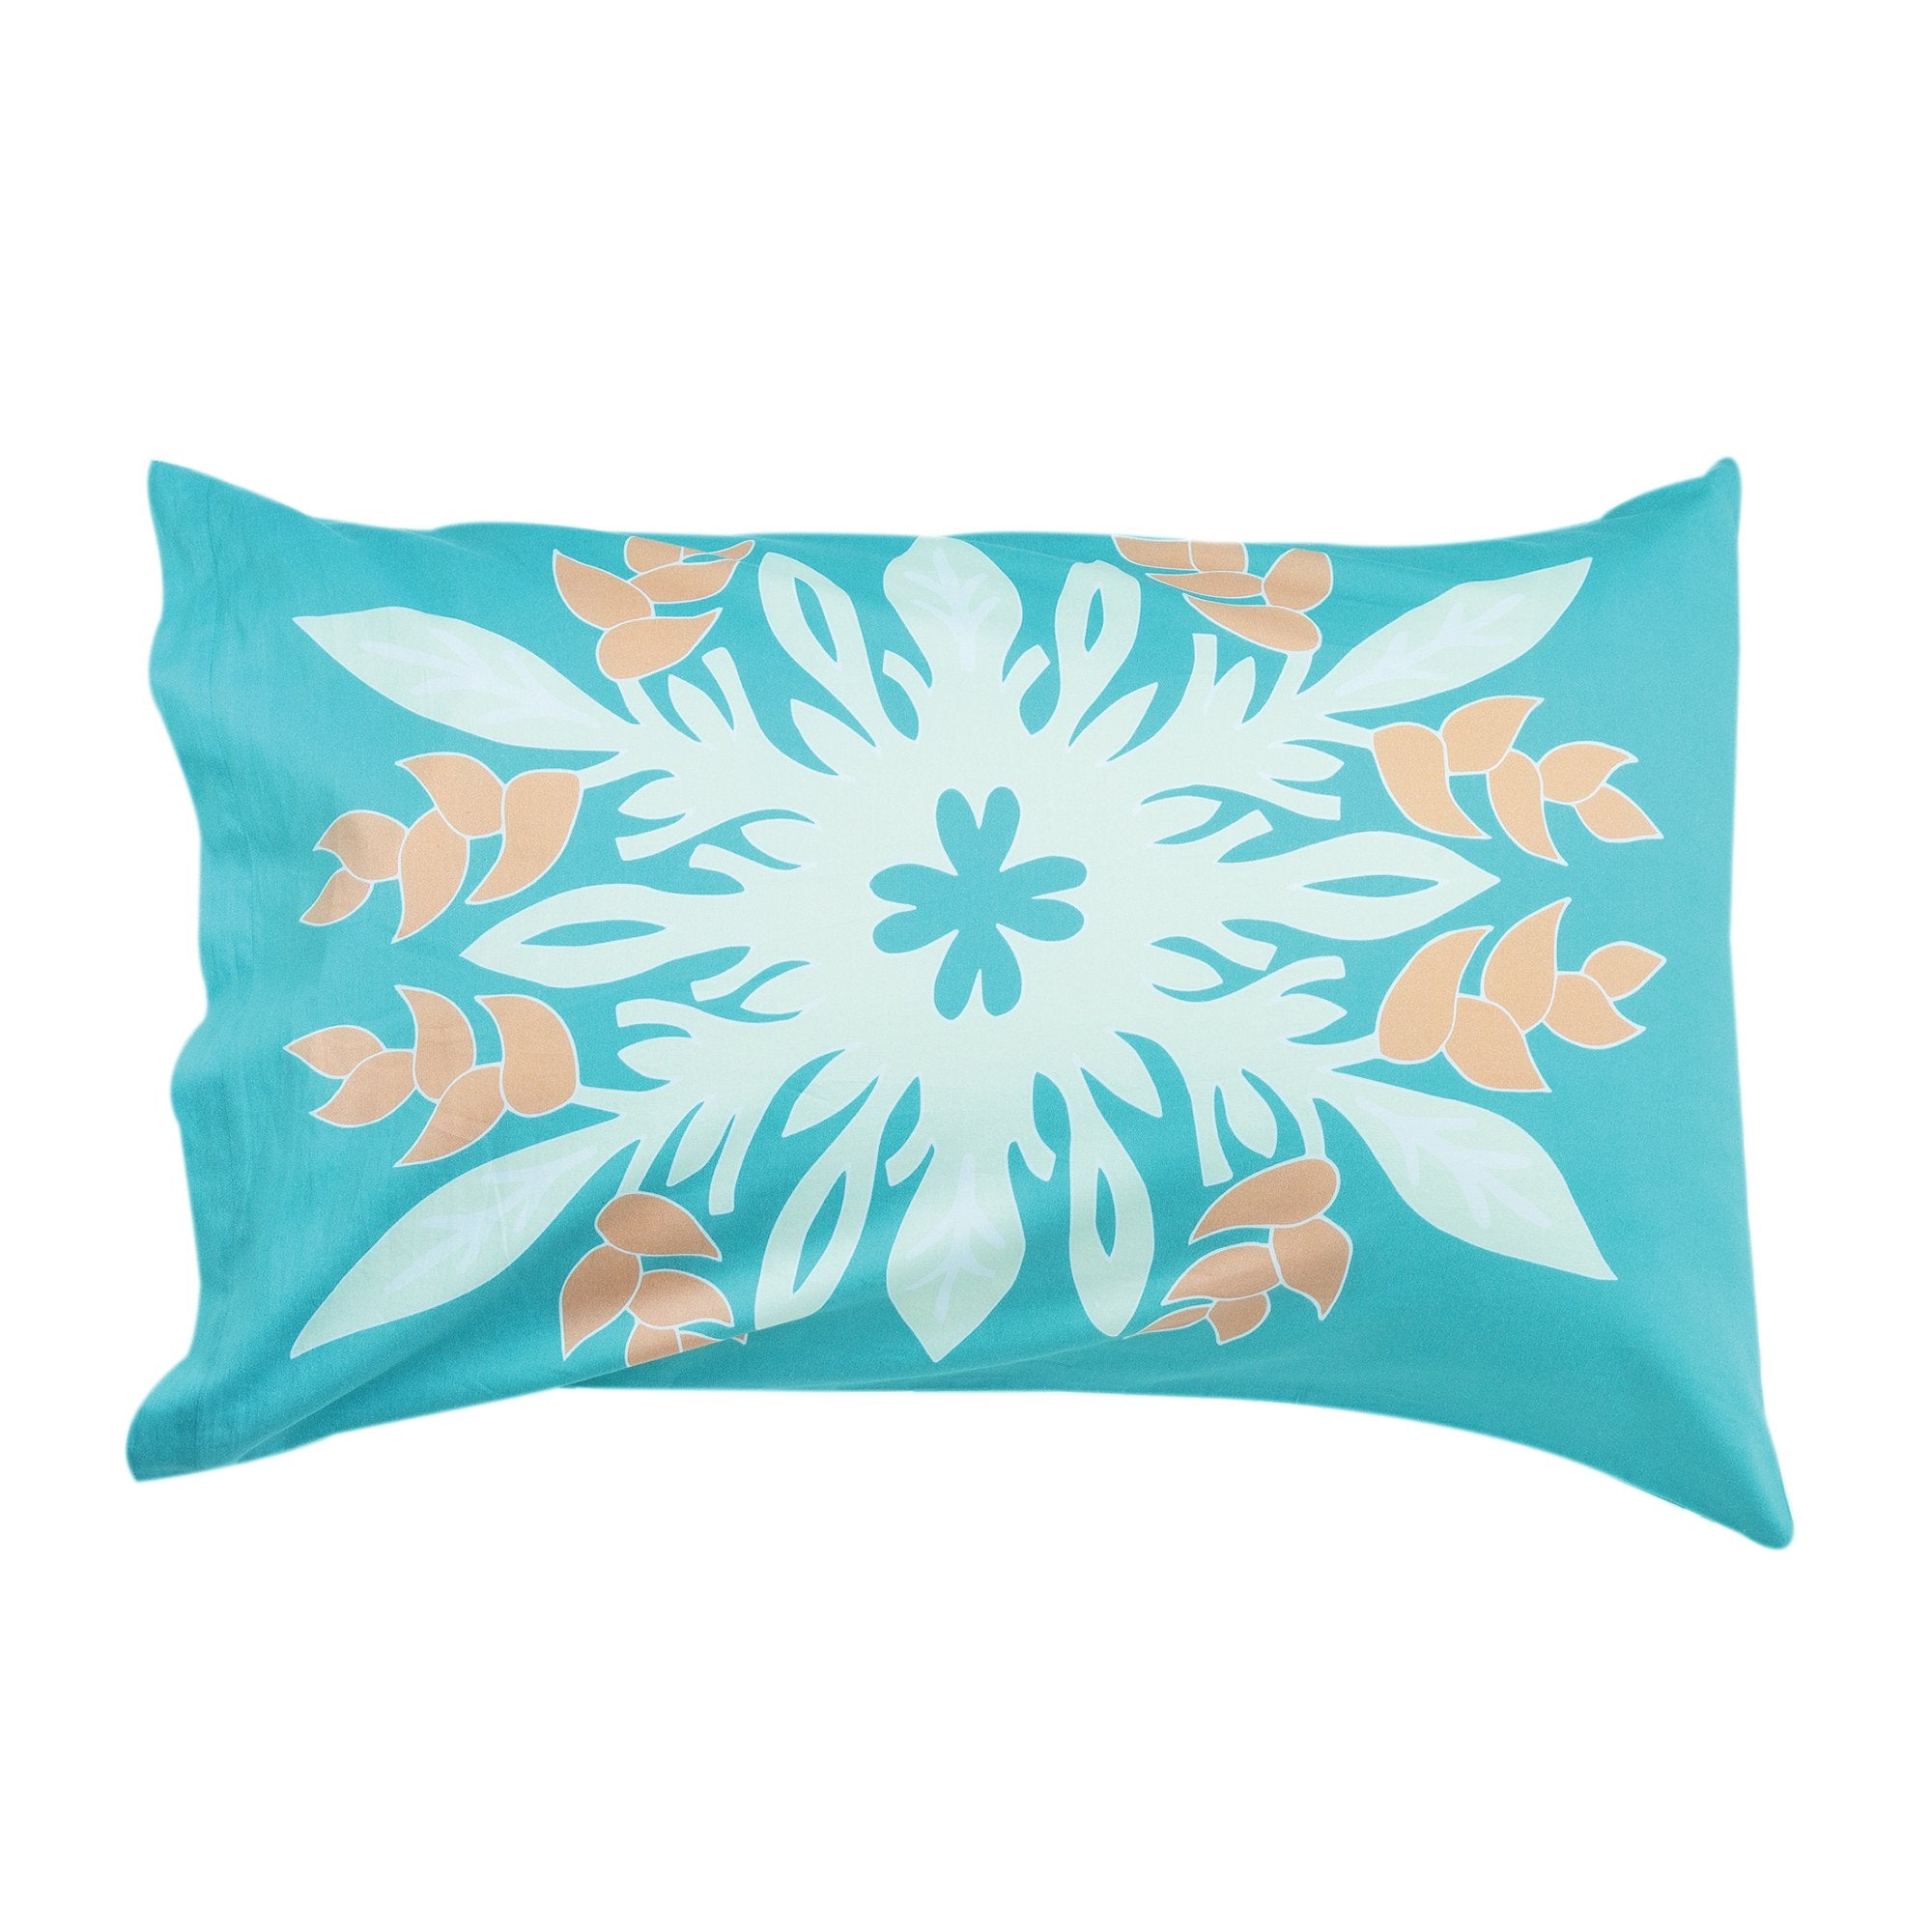 Kikau's Sea Foam Green kids pillowcase on white background